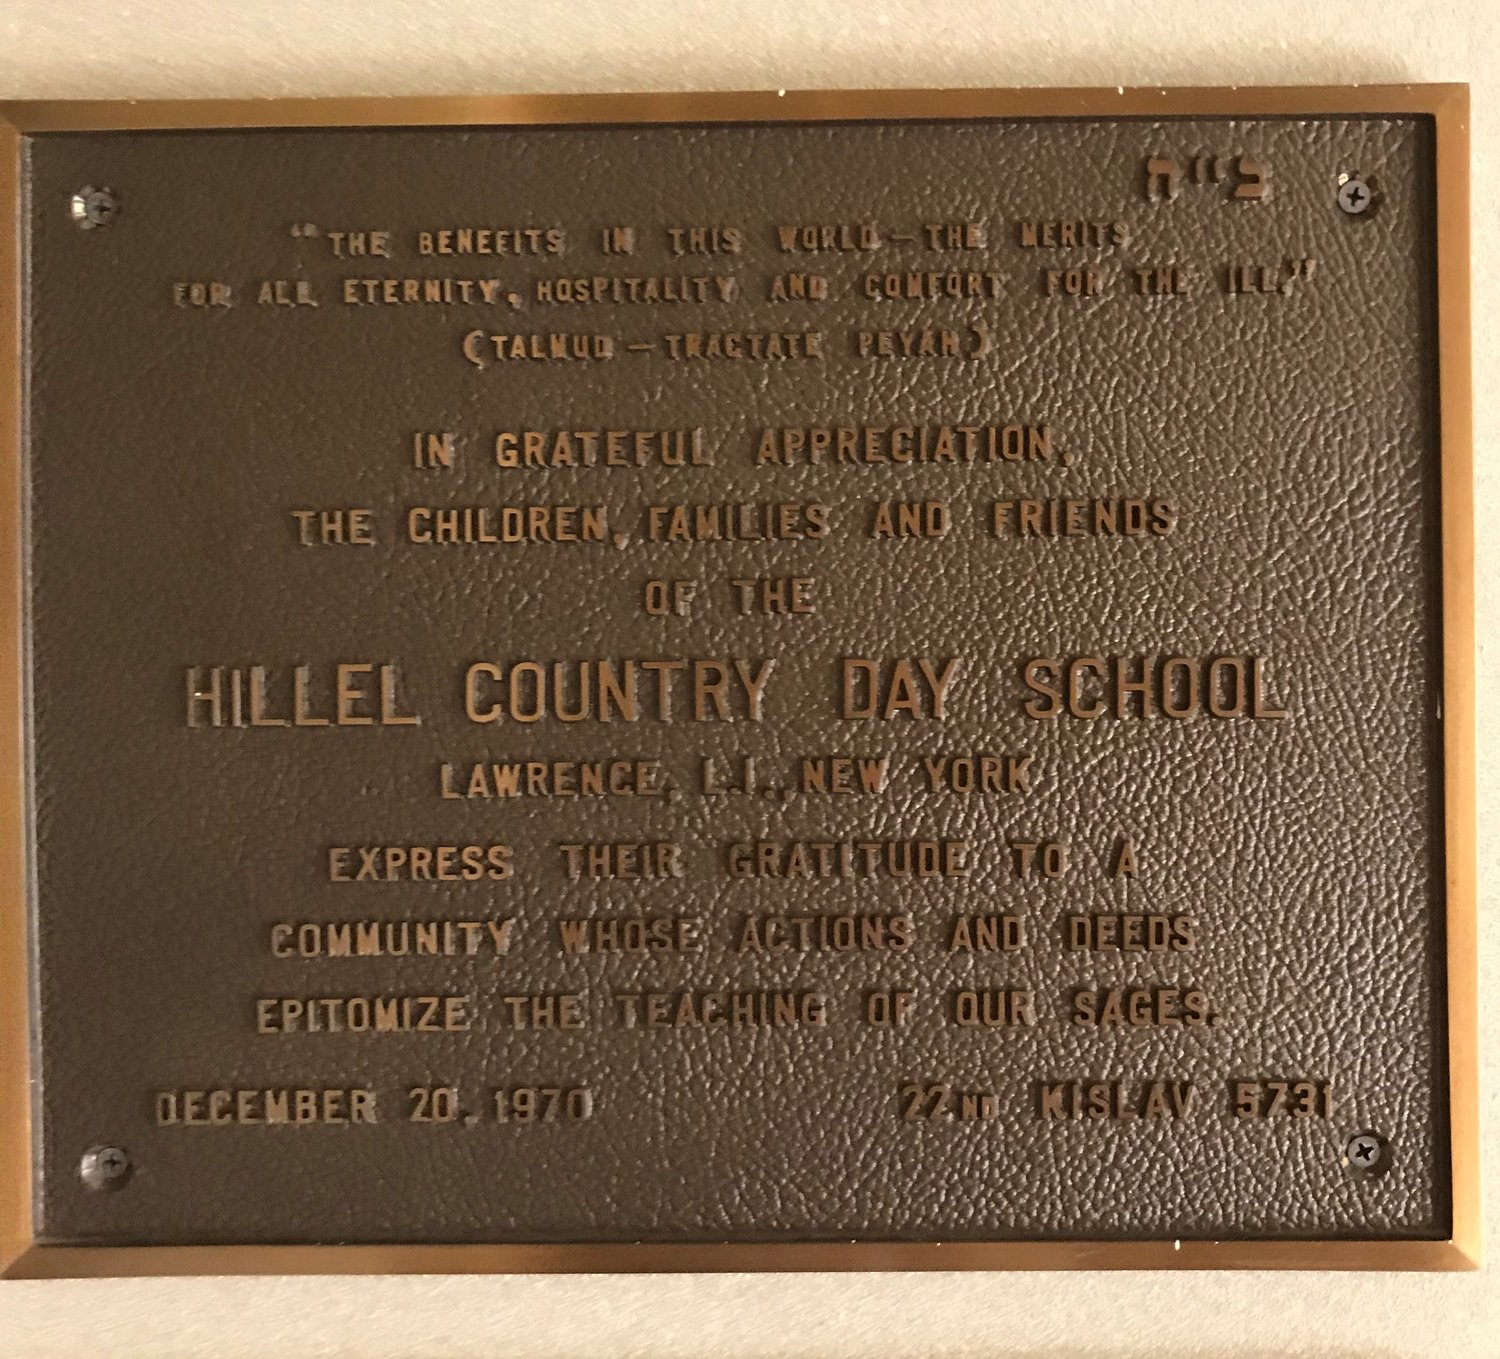 The Hillel Country Day School memorial plaque given to Temple Beth El in Allentown, Pa. in recognition for the community's goodwill after the bus accident.